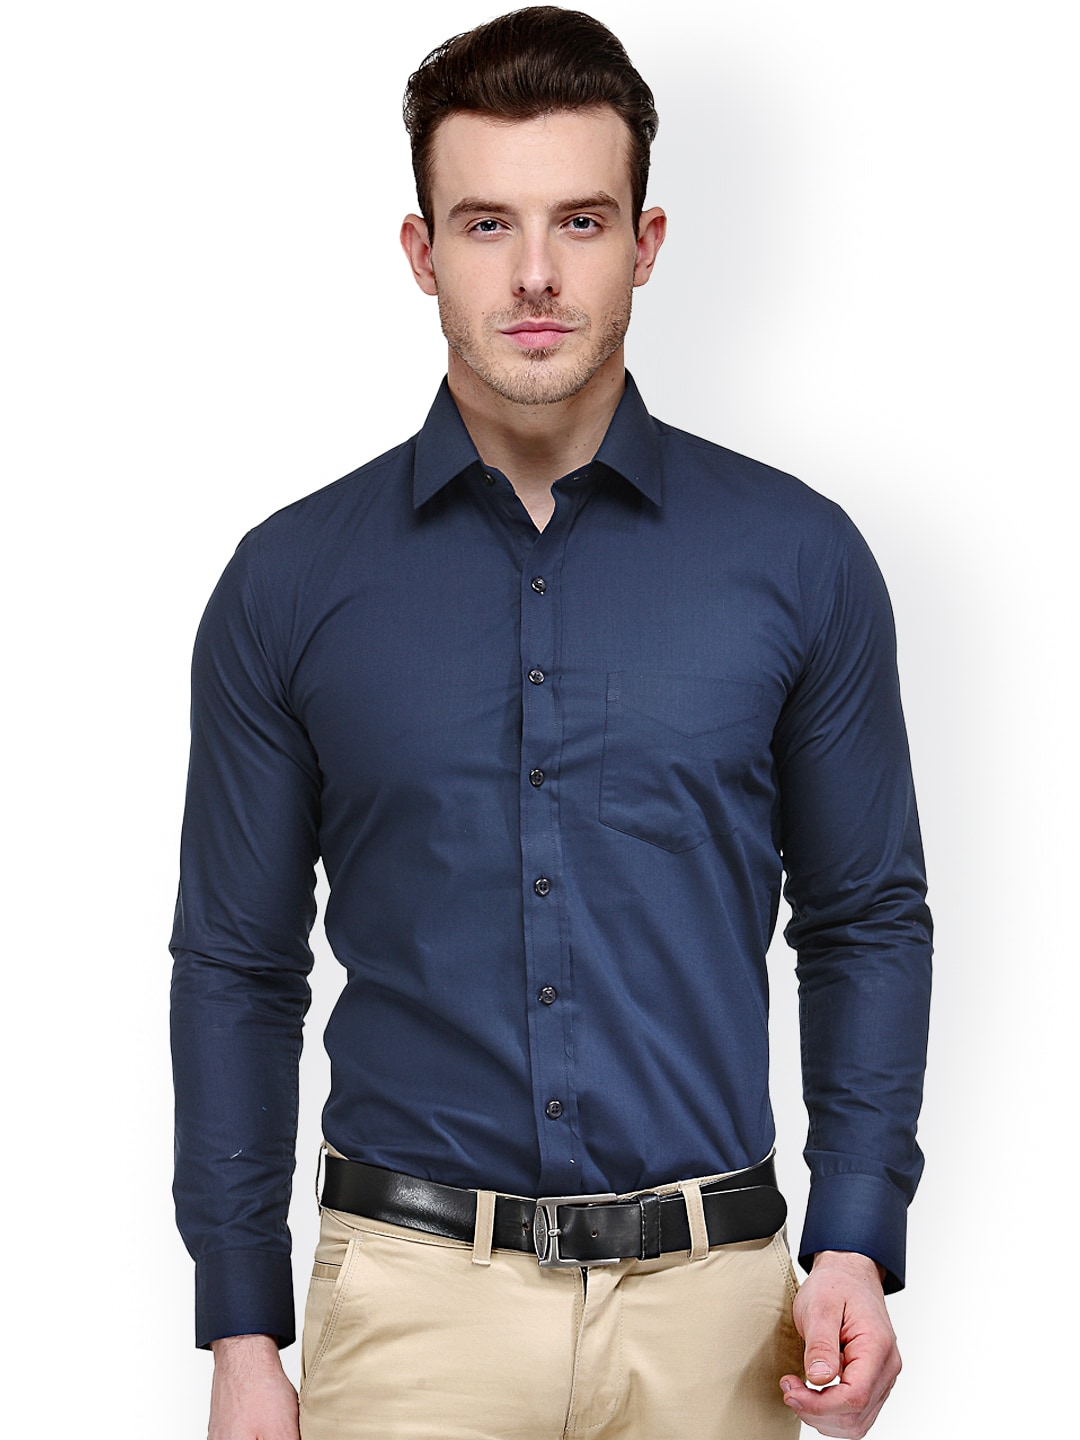 Best shirt brands in india kamos t shirt for Best place to buy mens dress shirts